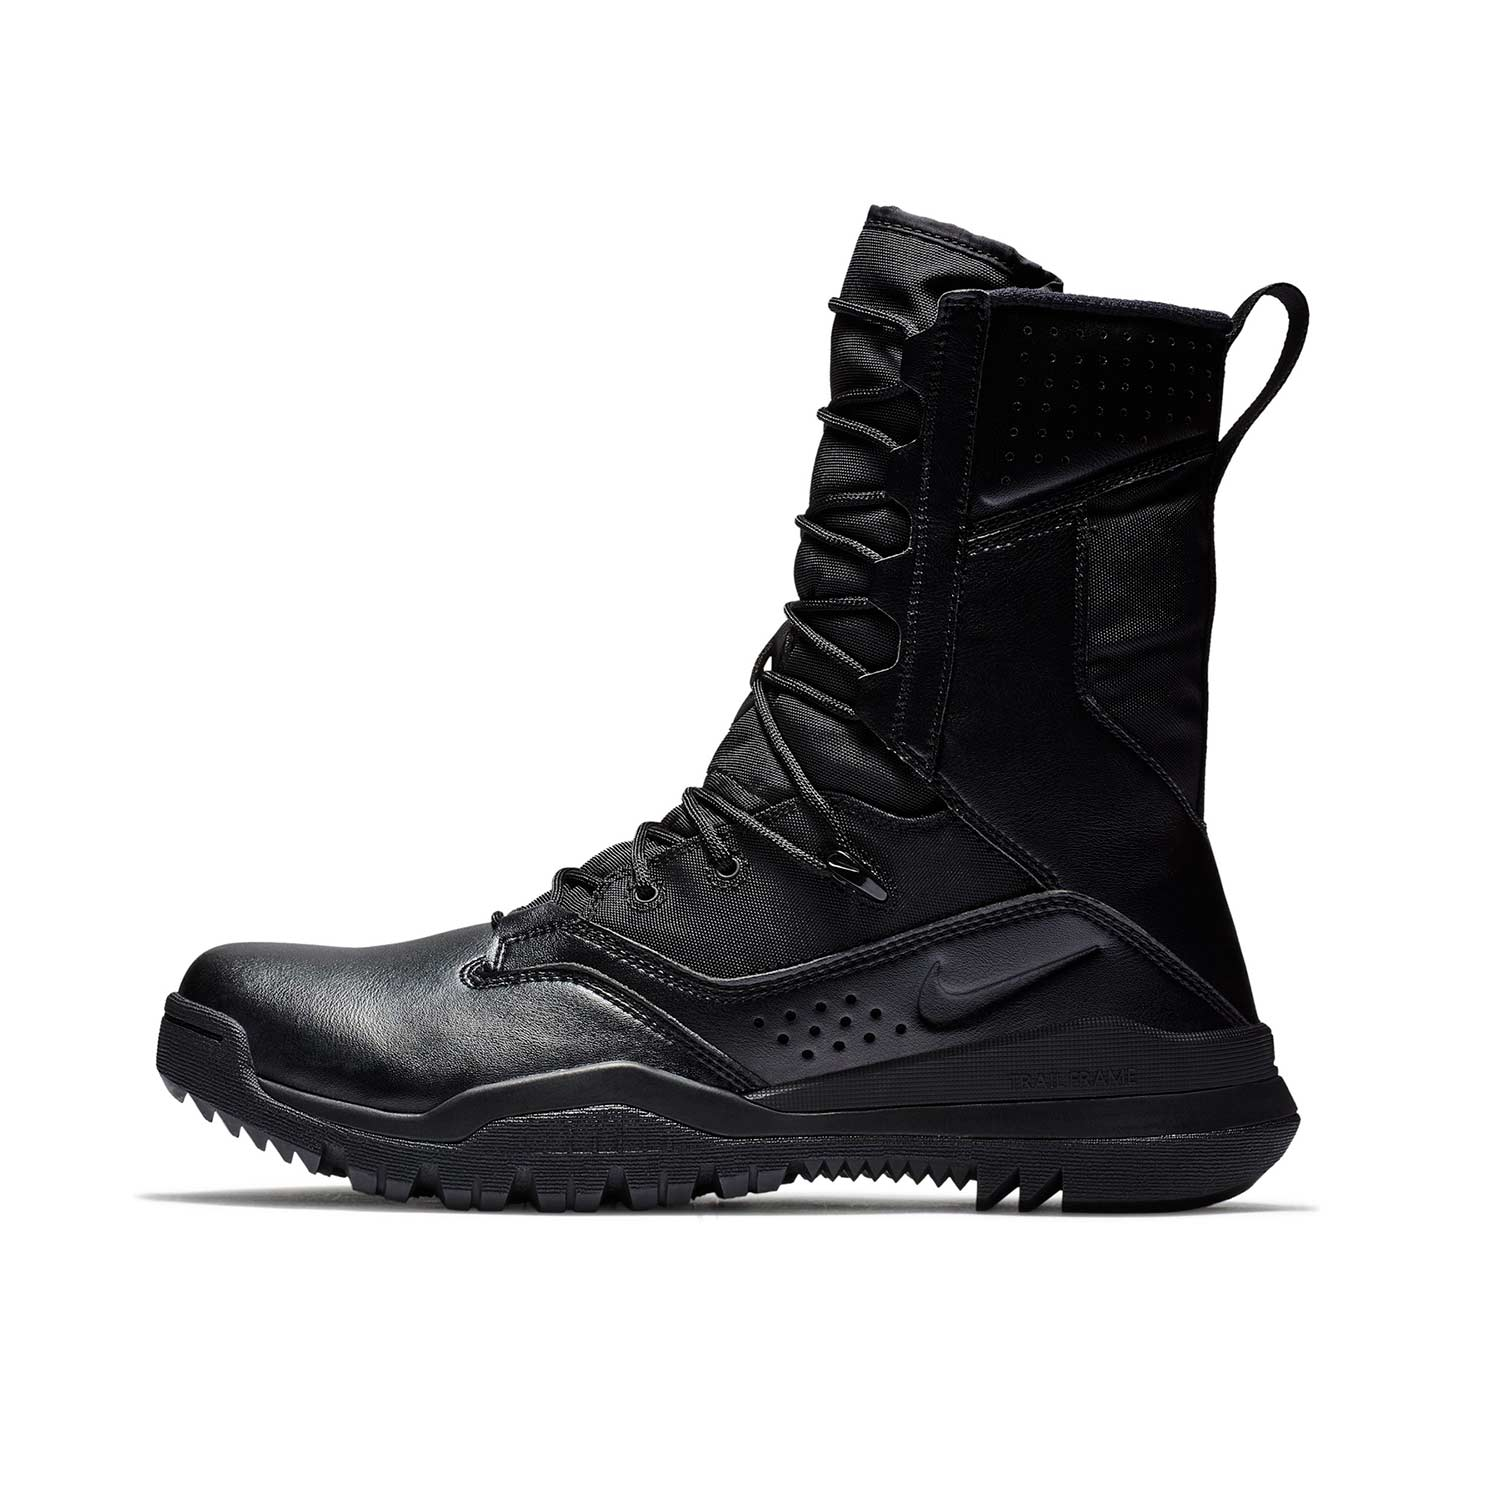 "Nike SFB Field 2 8"" Boot"